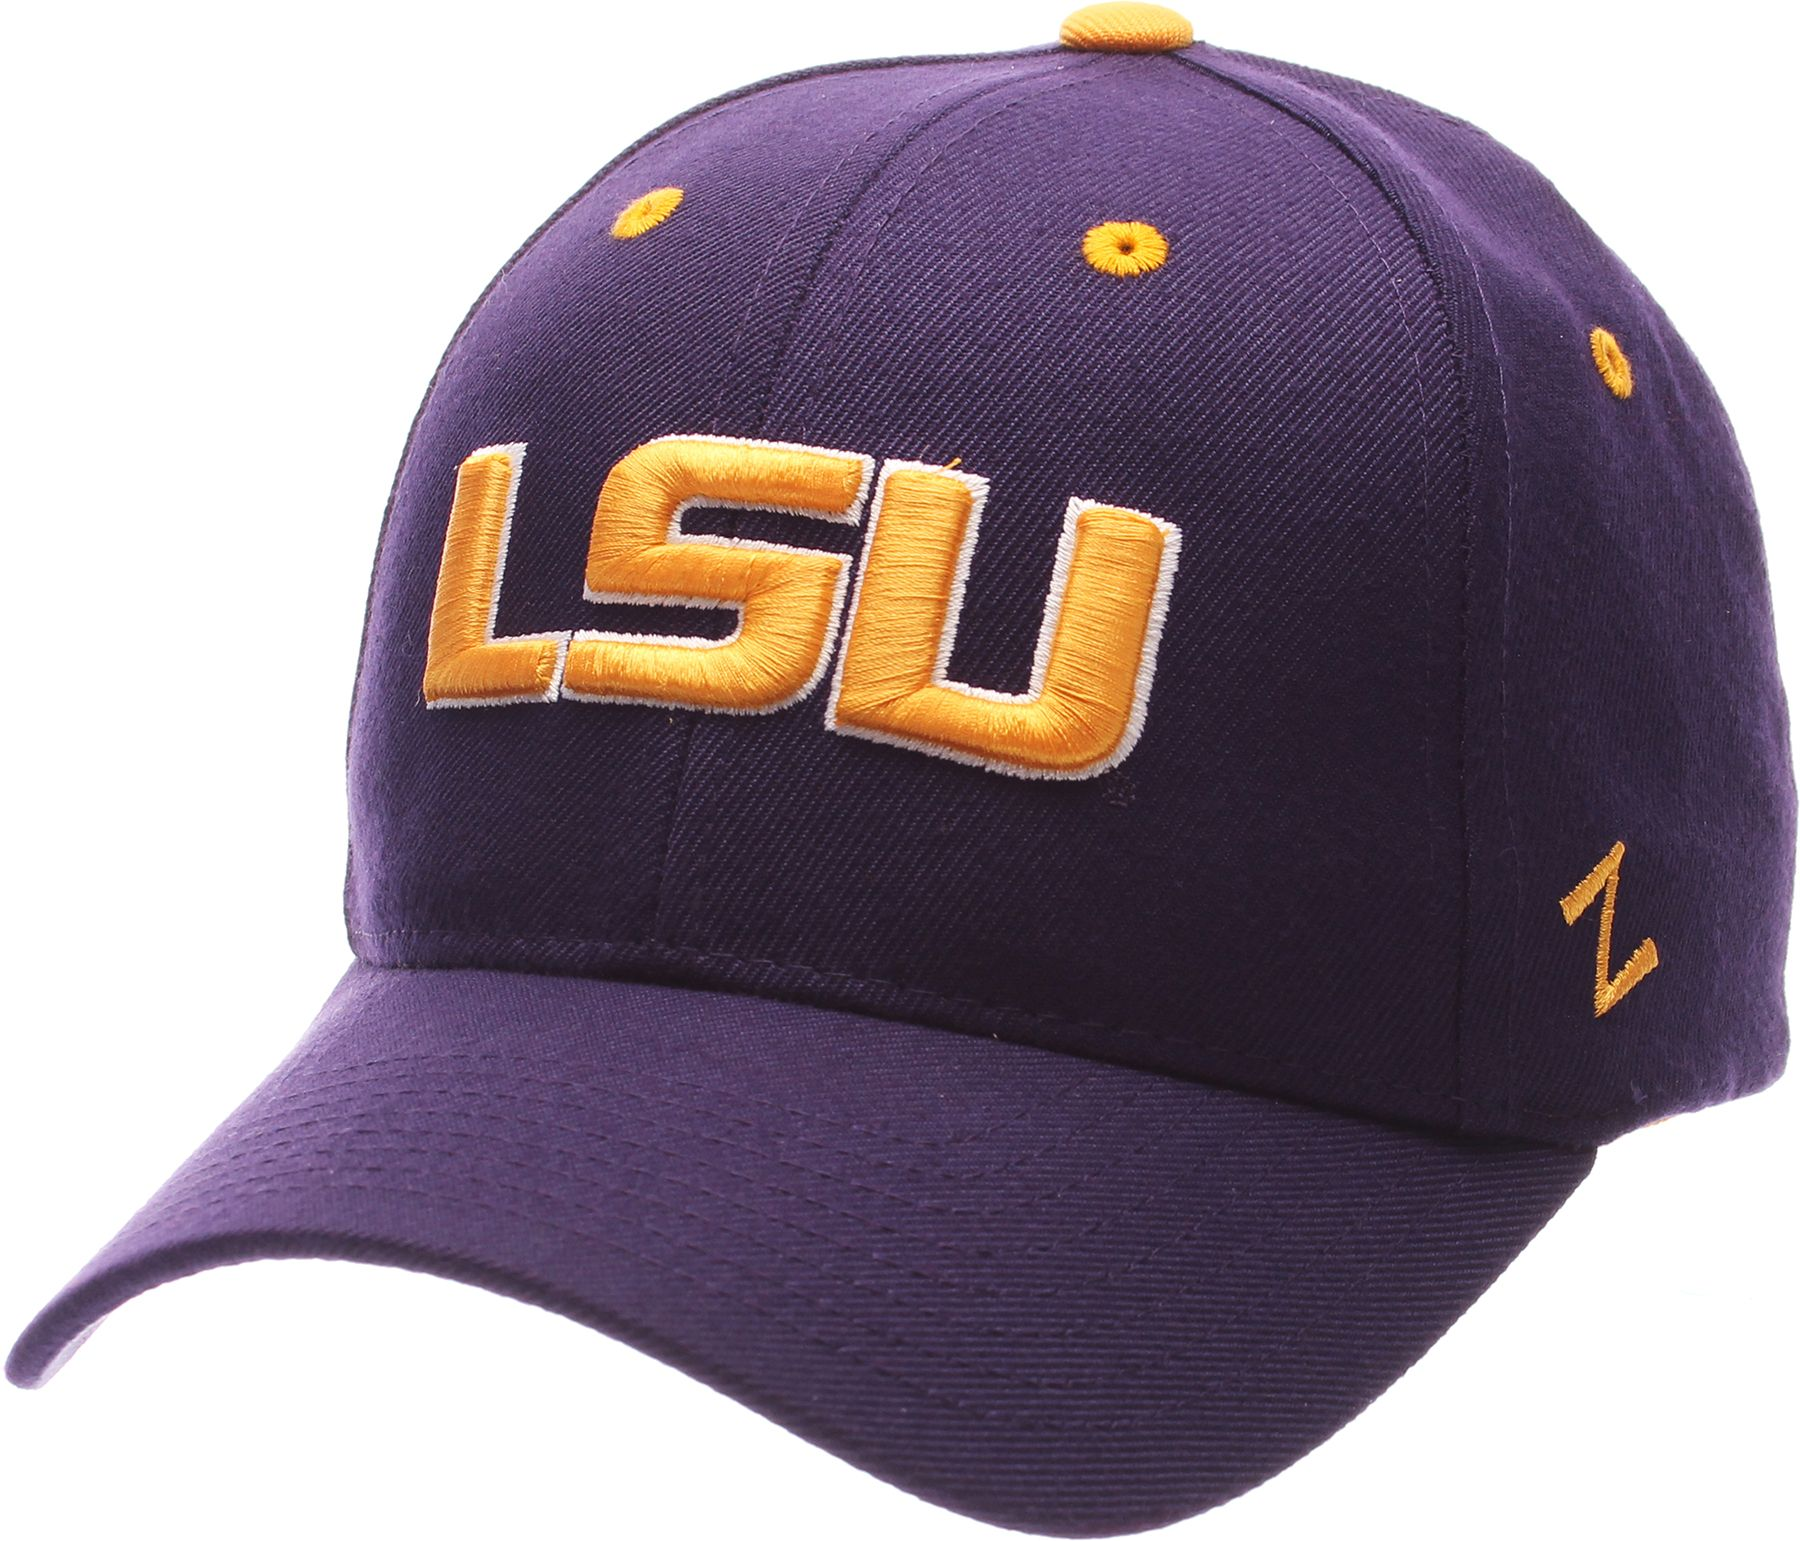 cheap for discount 062d1 84253 ... hot zephyr mens lsu tigers purple competitor adjustable hat d909e 611d5  uk top of the world lsu ...